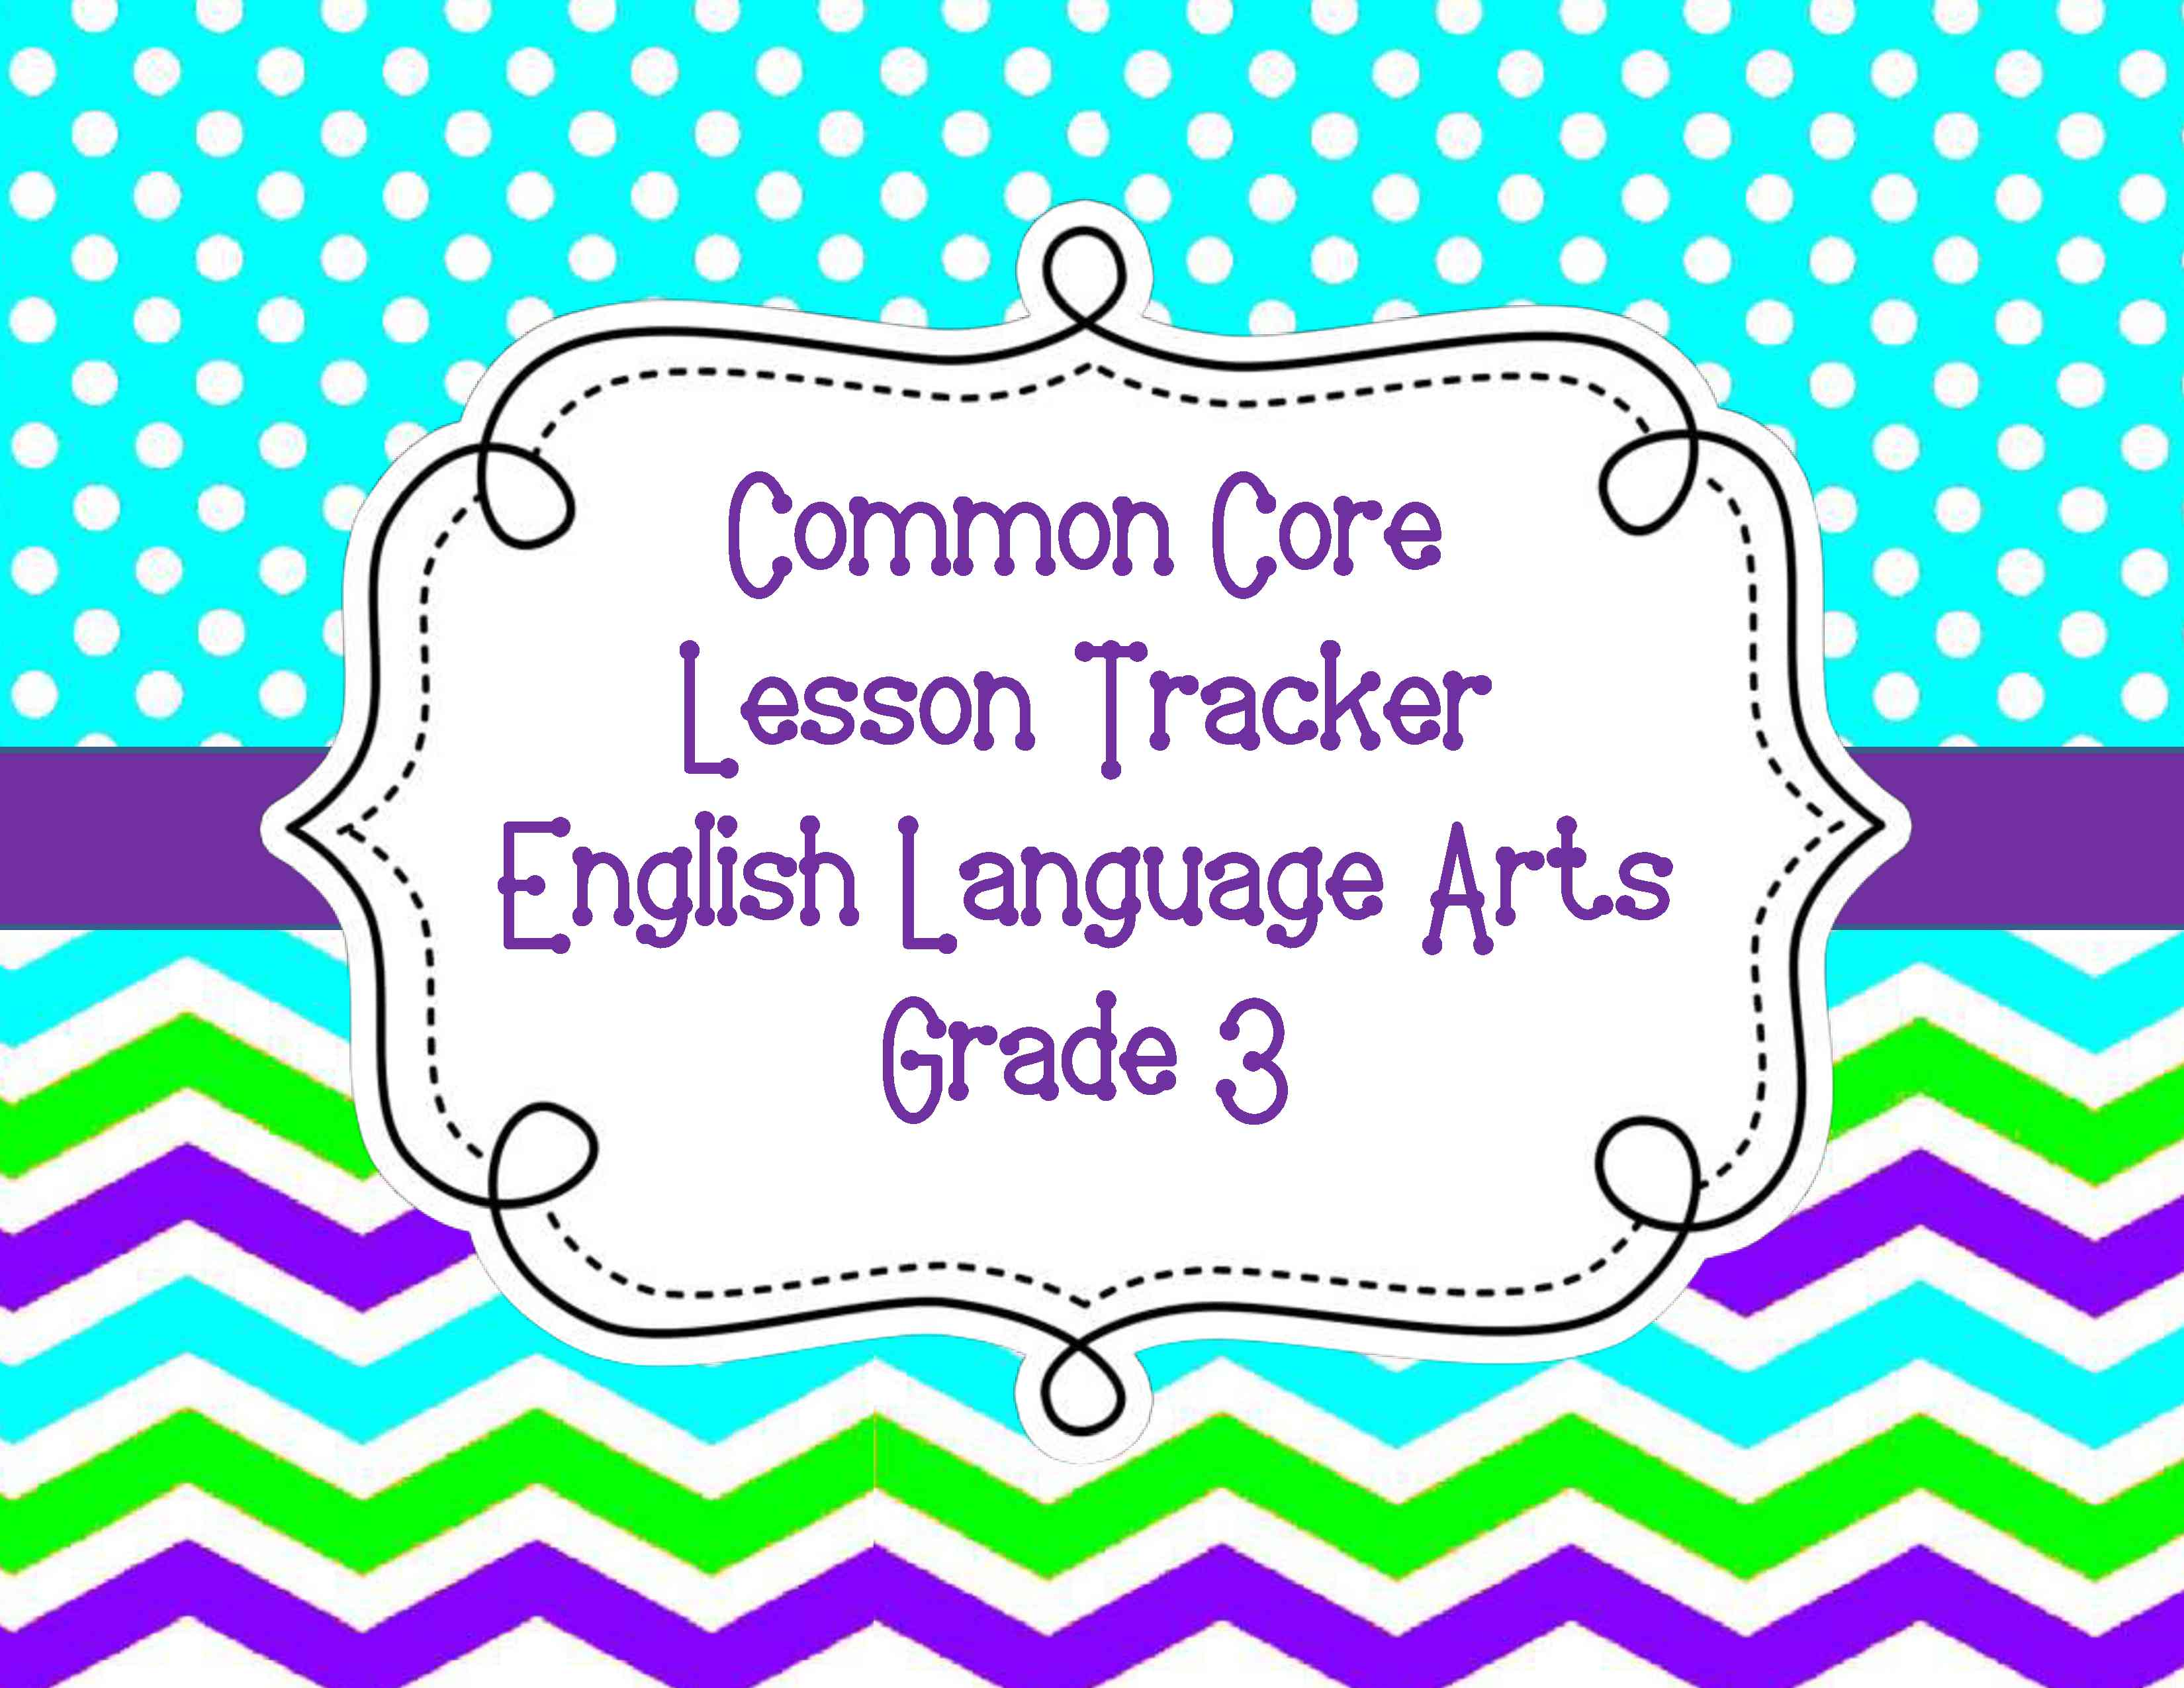 Common Core Lesson Plan Organizers for Math and ELA | Scholastic